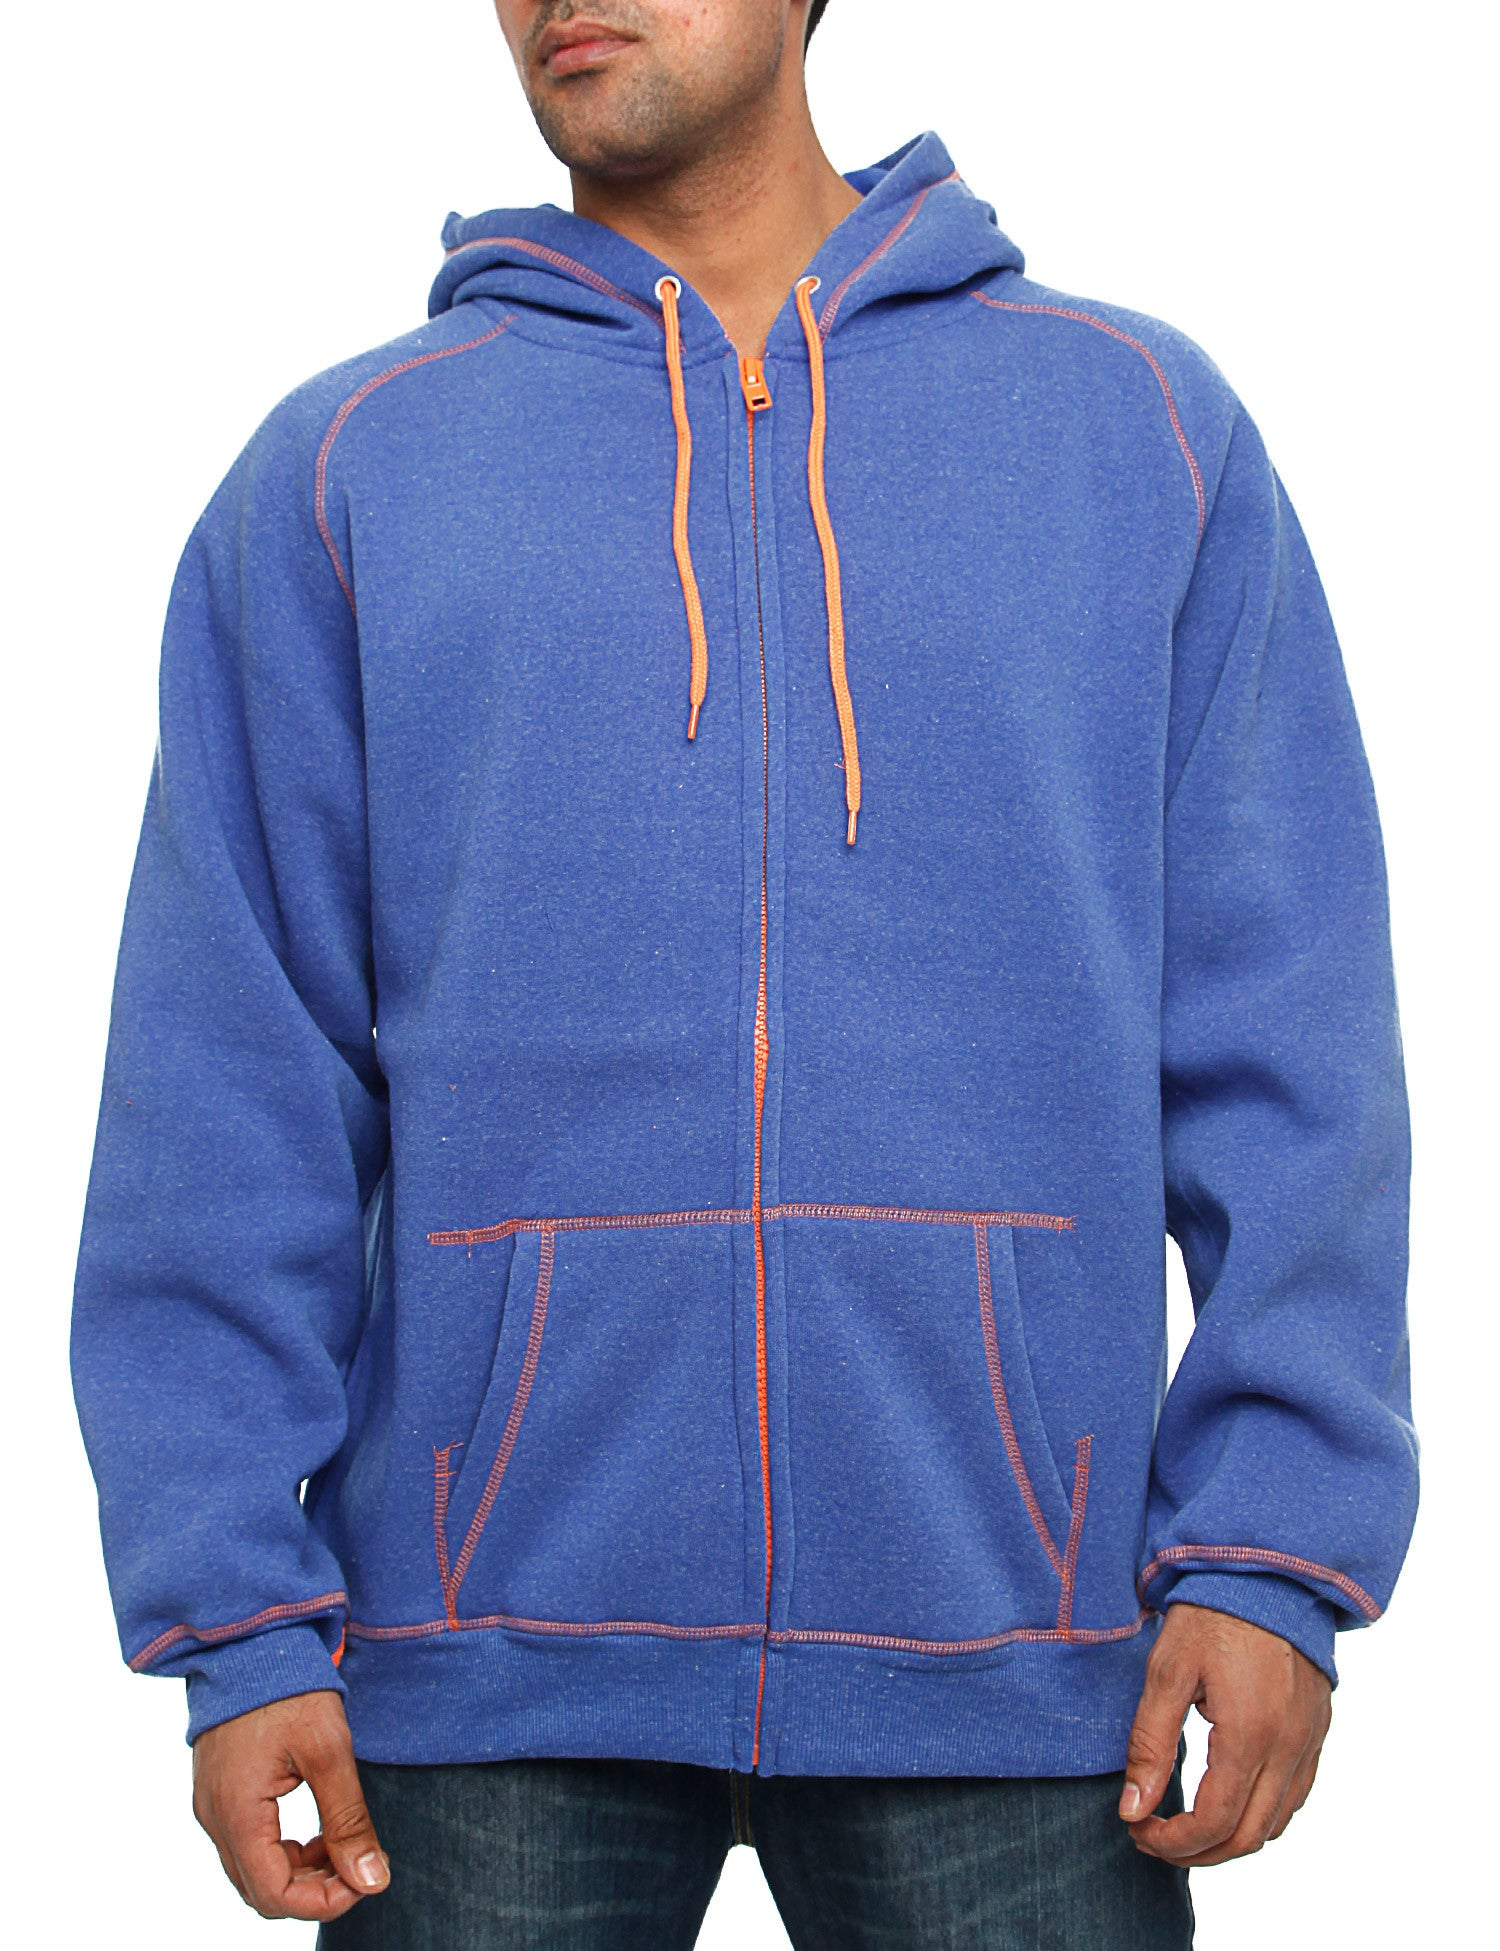 Royal Blue Zip Hoodie 44013 Ink Blue